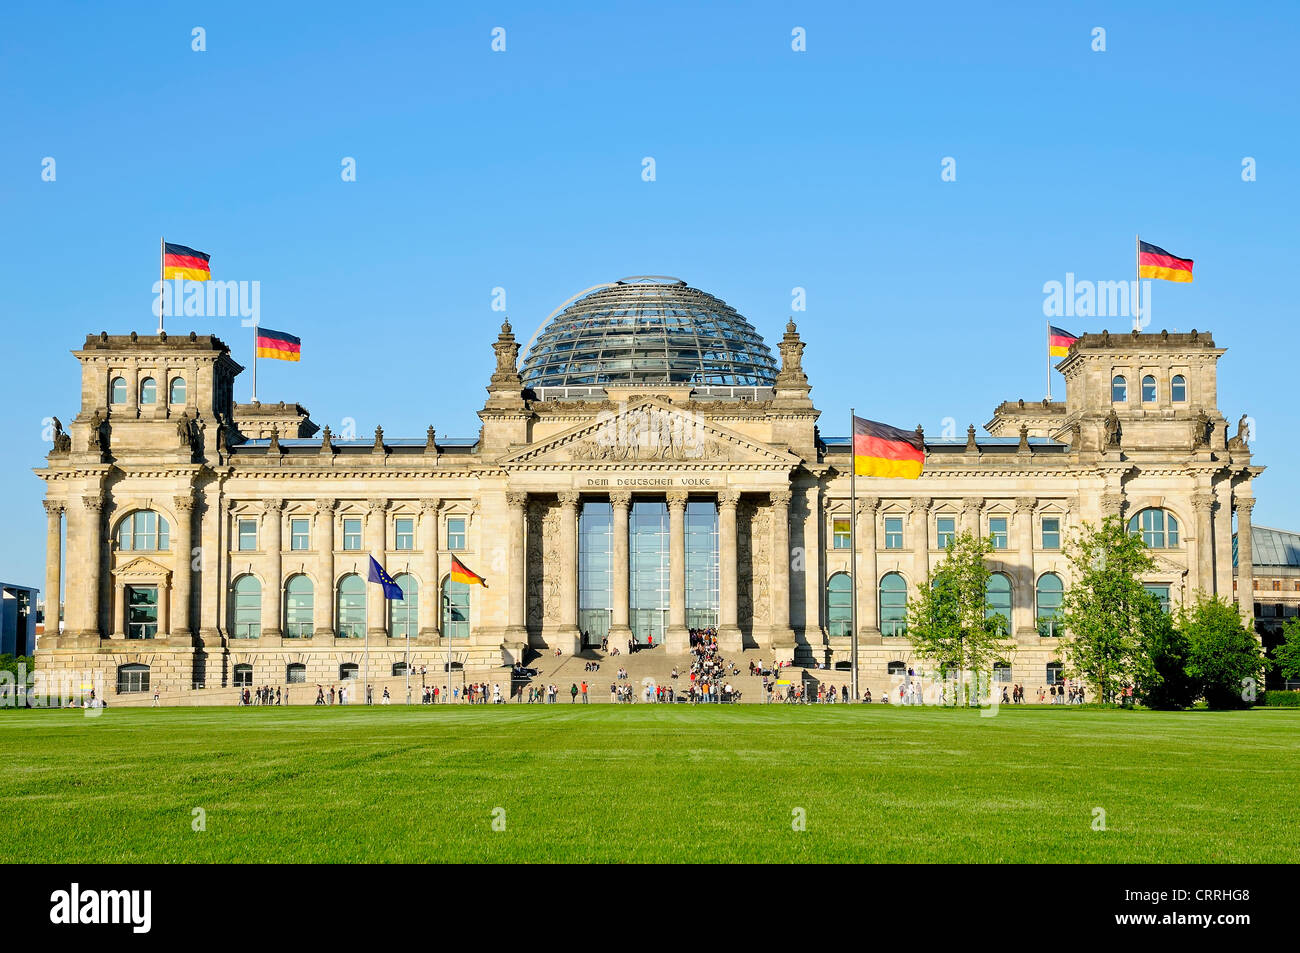 Bundestag (Reichstag) in Berlin on a beautiful sunny day - Stock Image